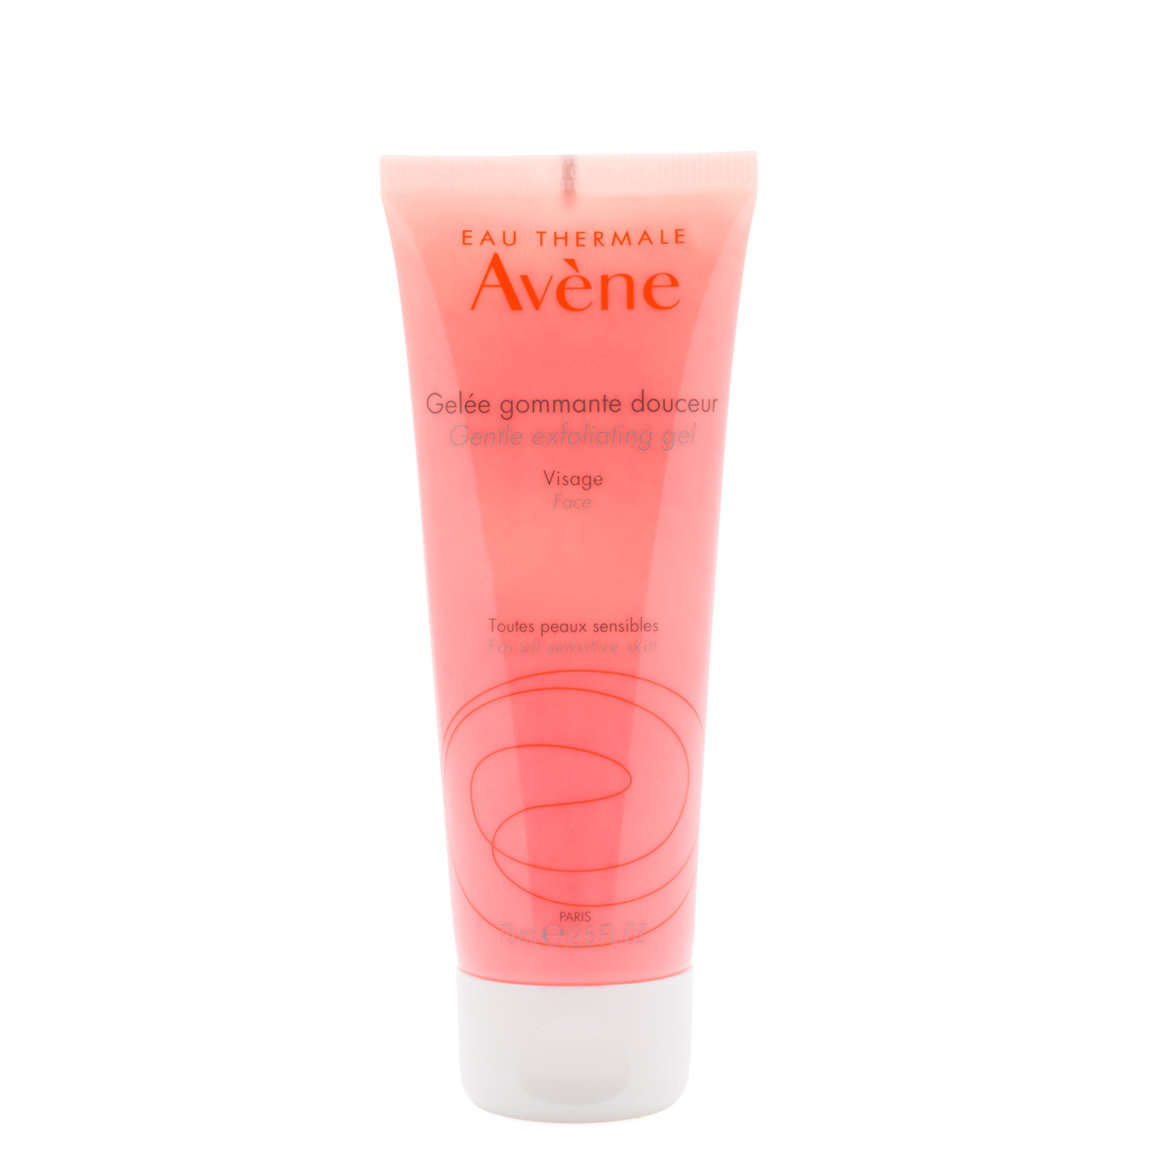 Eau Thermale Avène Gentle Exfoliating Gel product swatch.